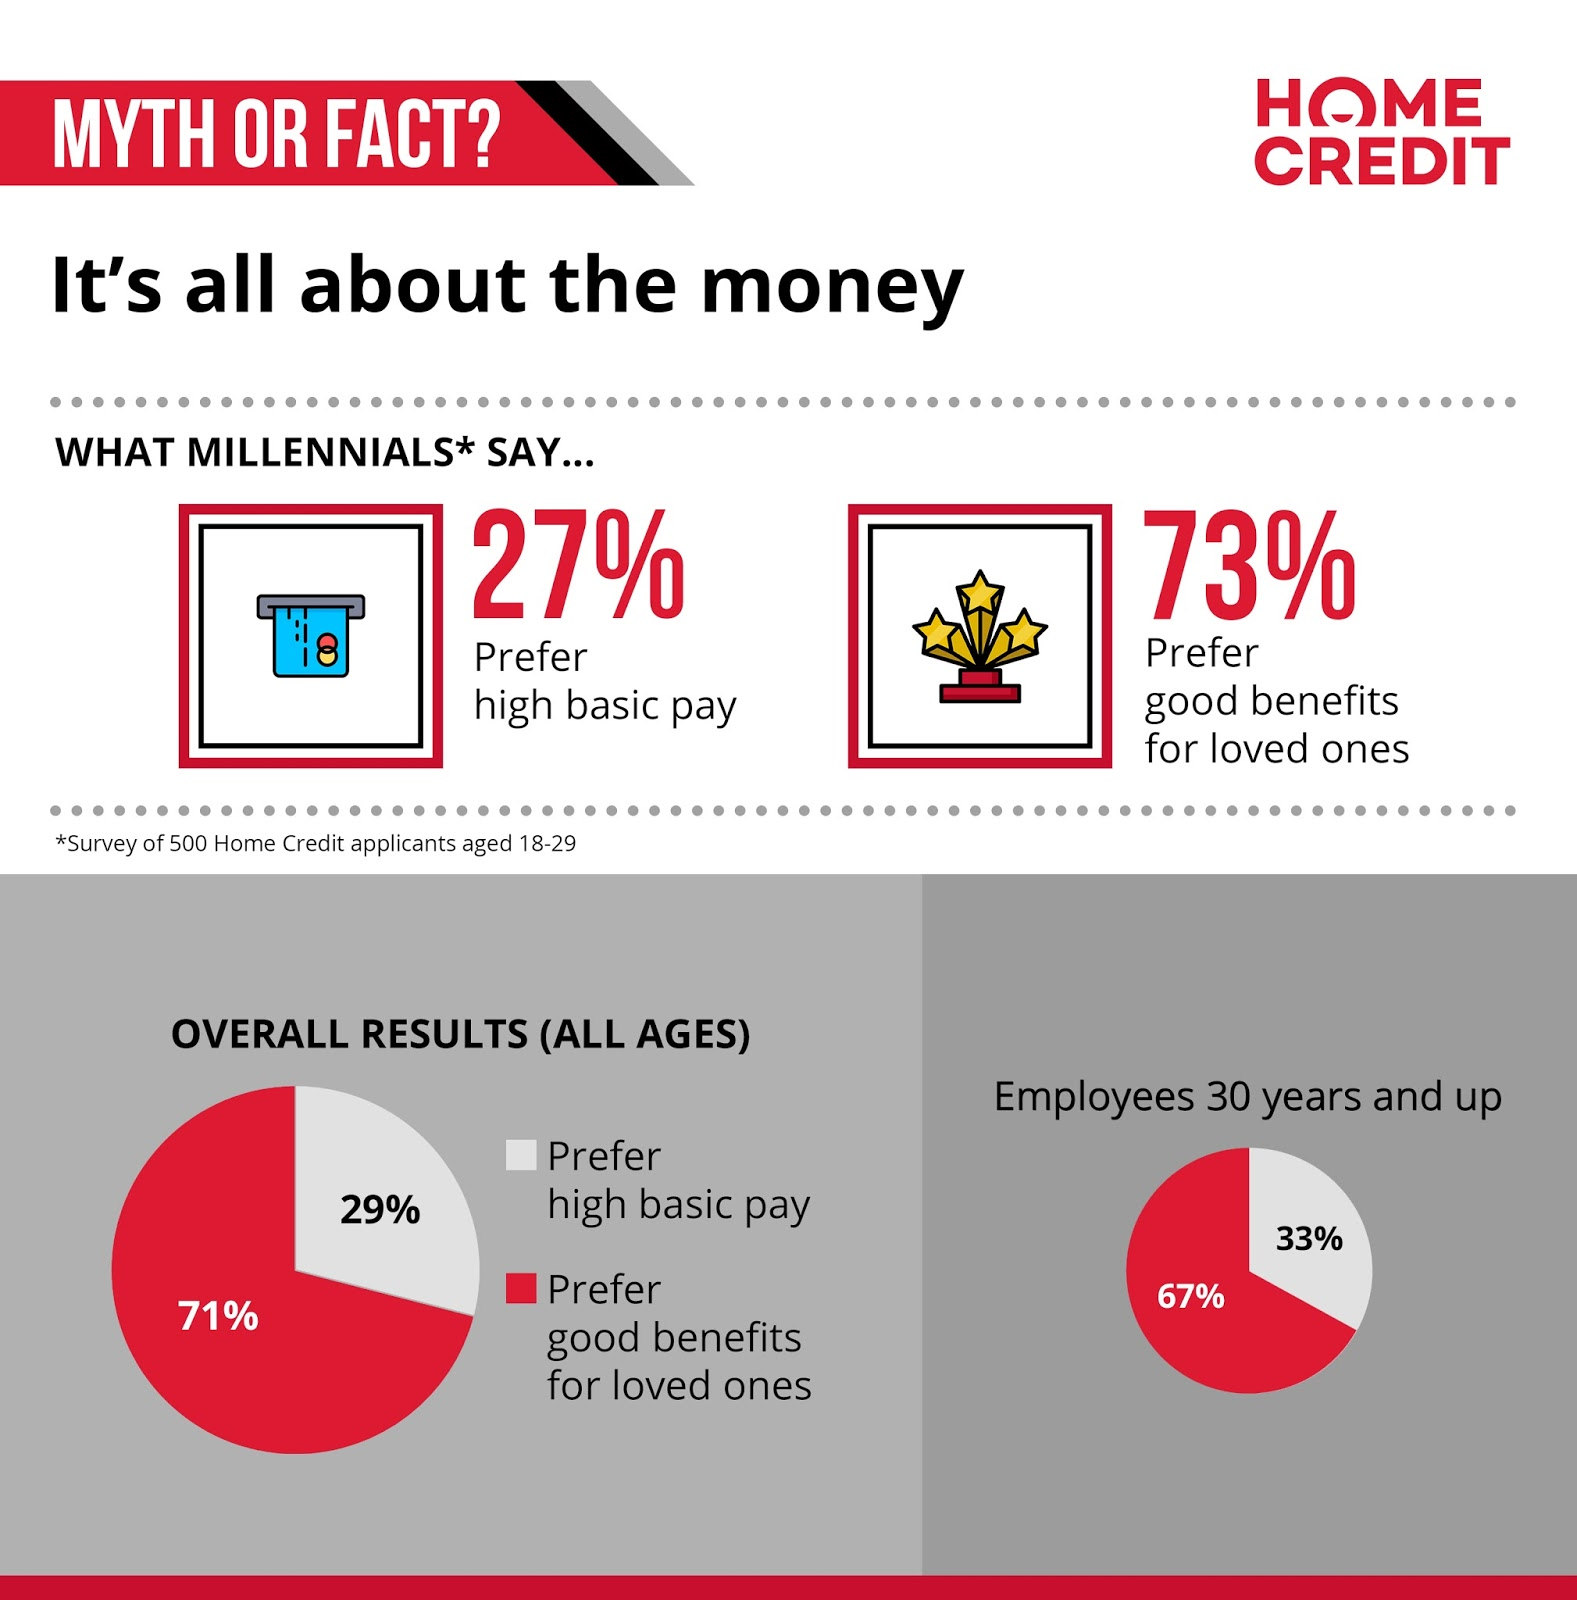 Myth or fact: it's all about the money